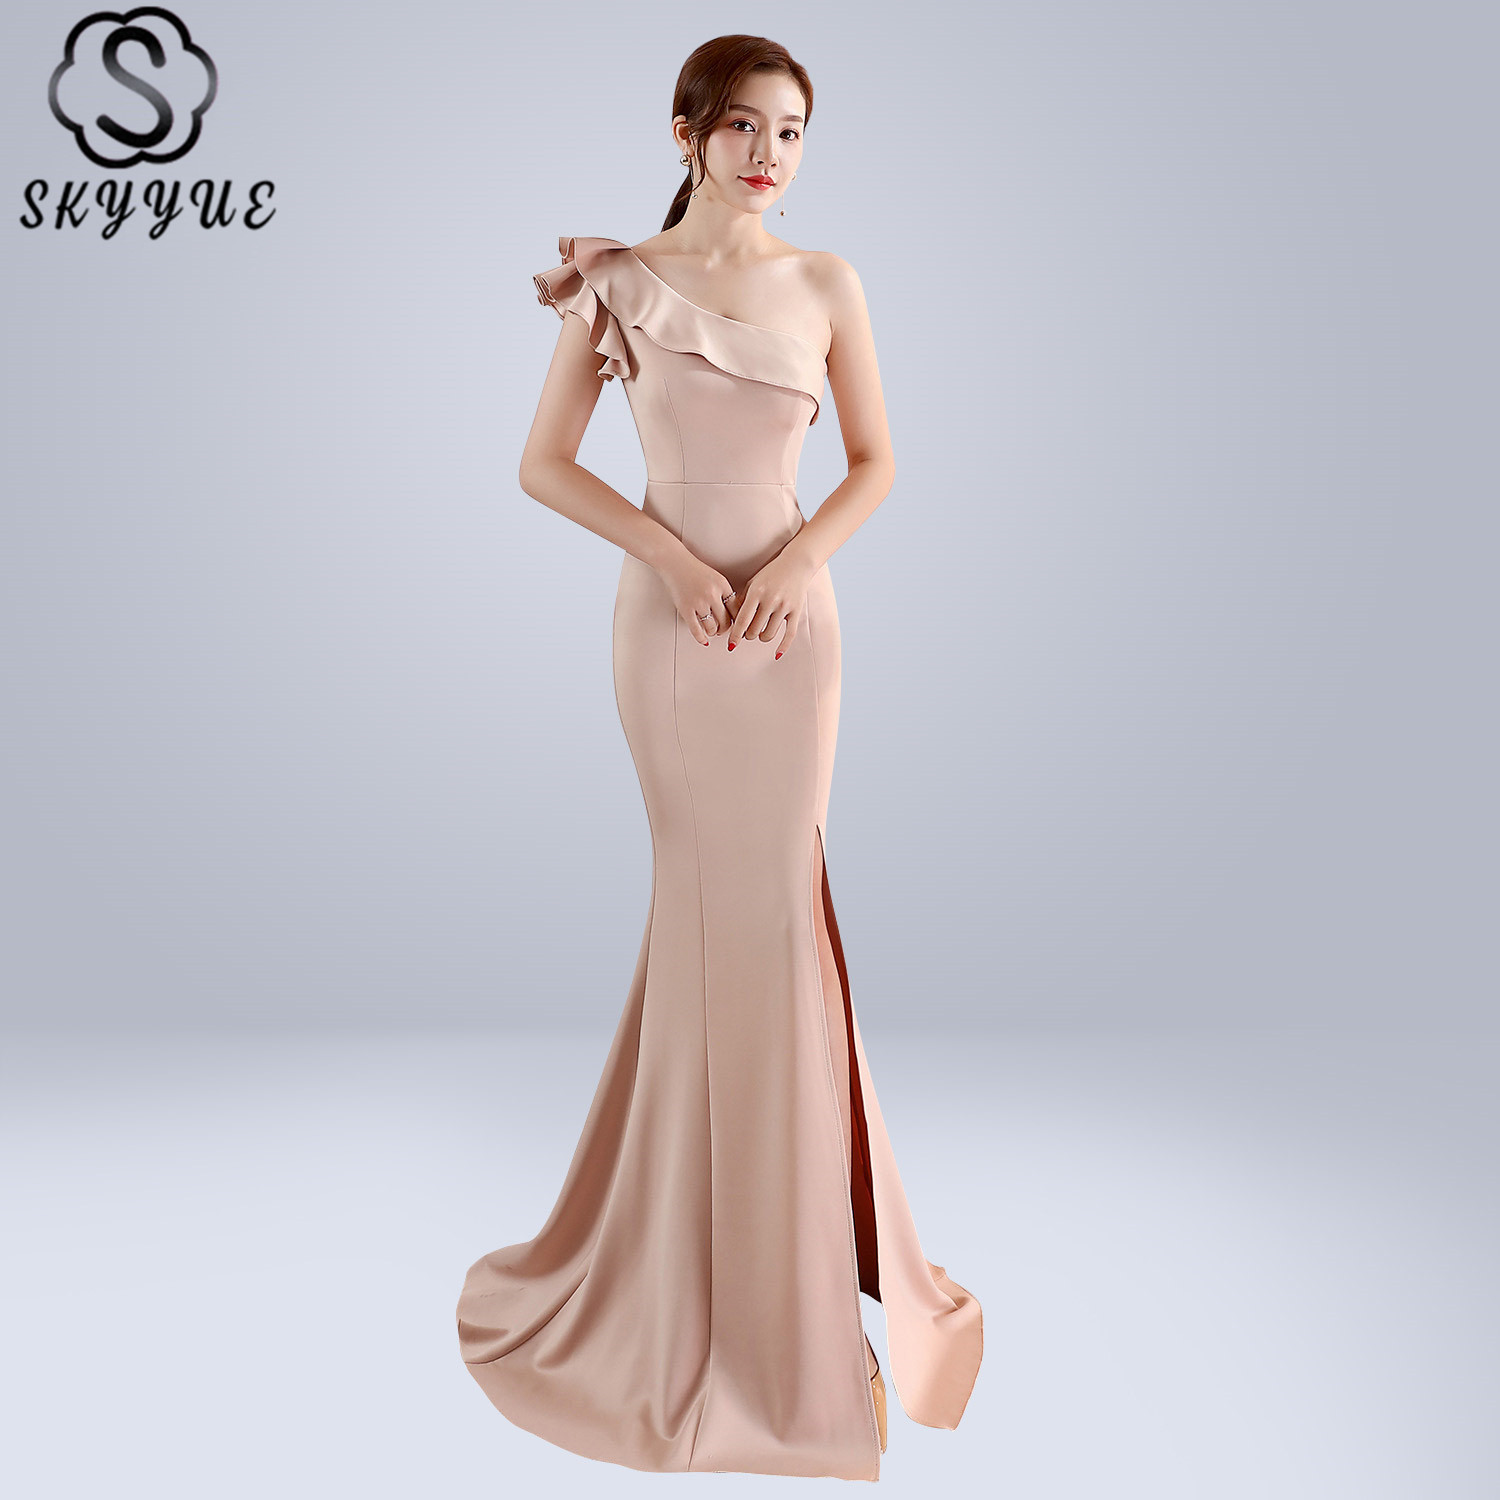 Skyyue Evening Dress Short Sleeve Split Women Party Dresses Ruffles Robe De Soiree 2019 Plus Size One Shoulder Formal Gowns C092